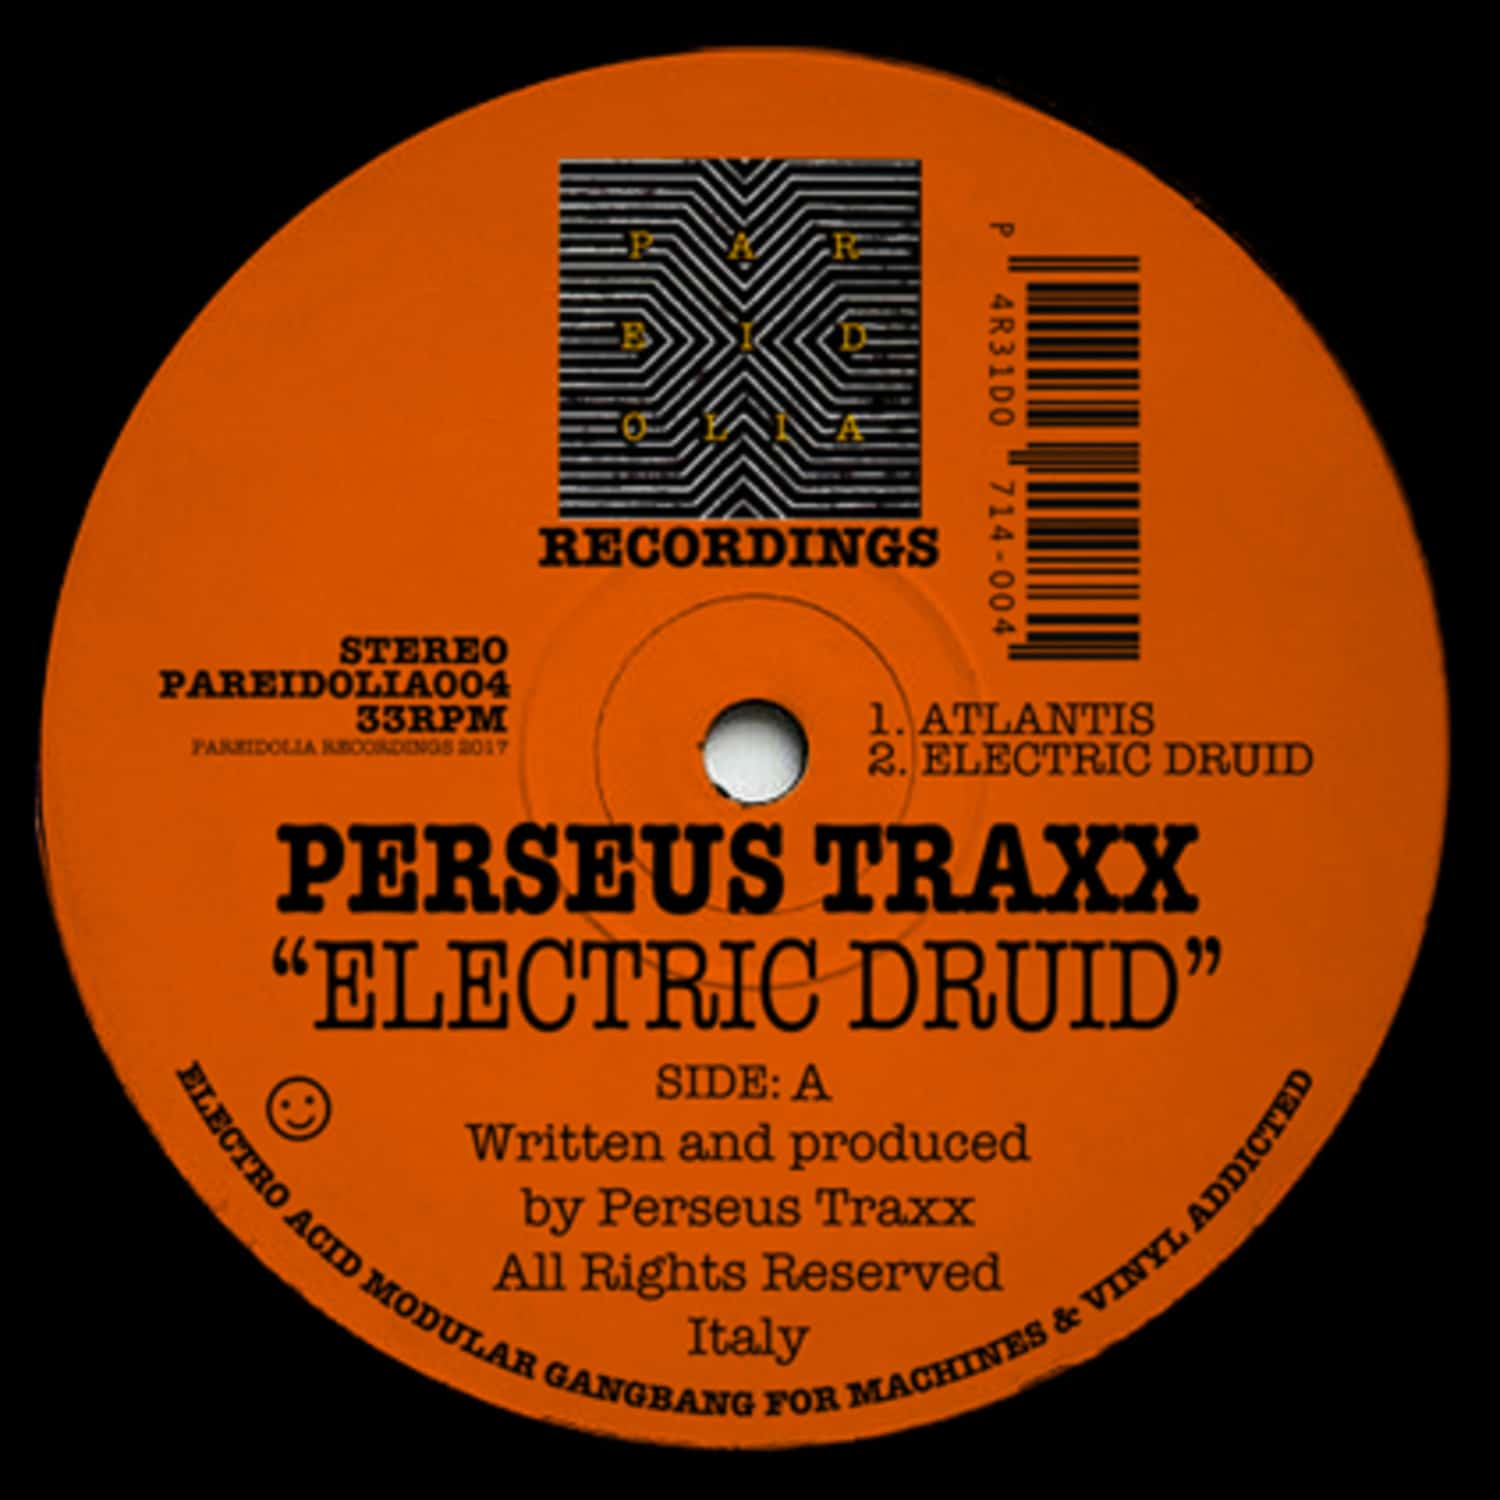 Perseus Traxx - ELECTRIC DRUID